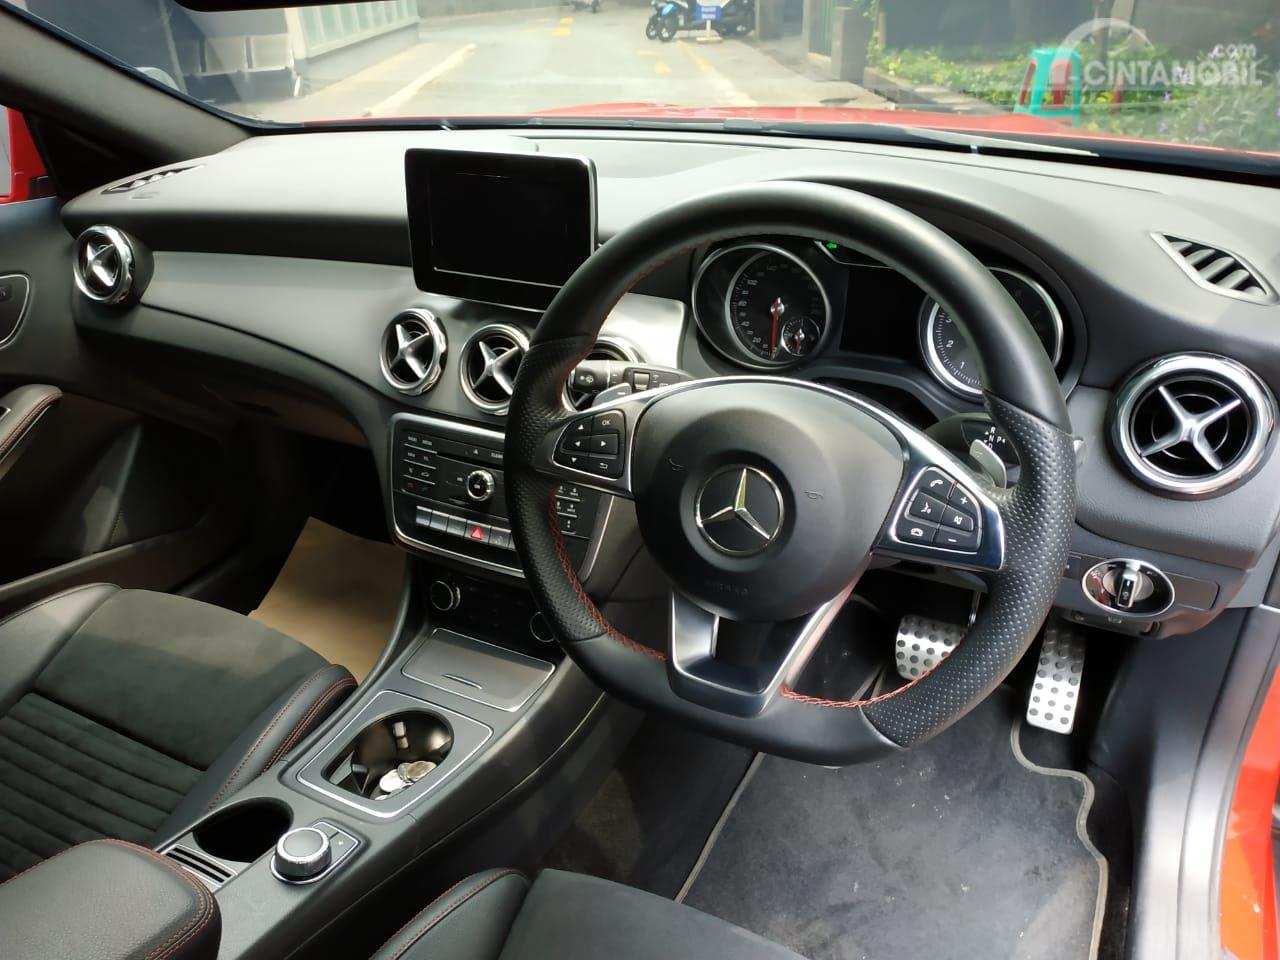 Tampak Layout interior Mercedes-Benz GLA 200 AMG Line 2018